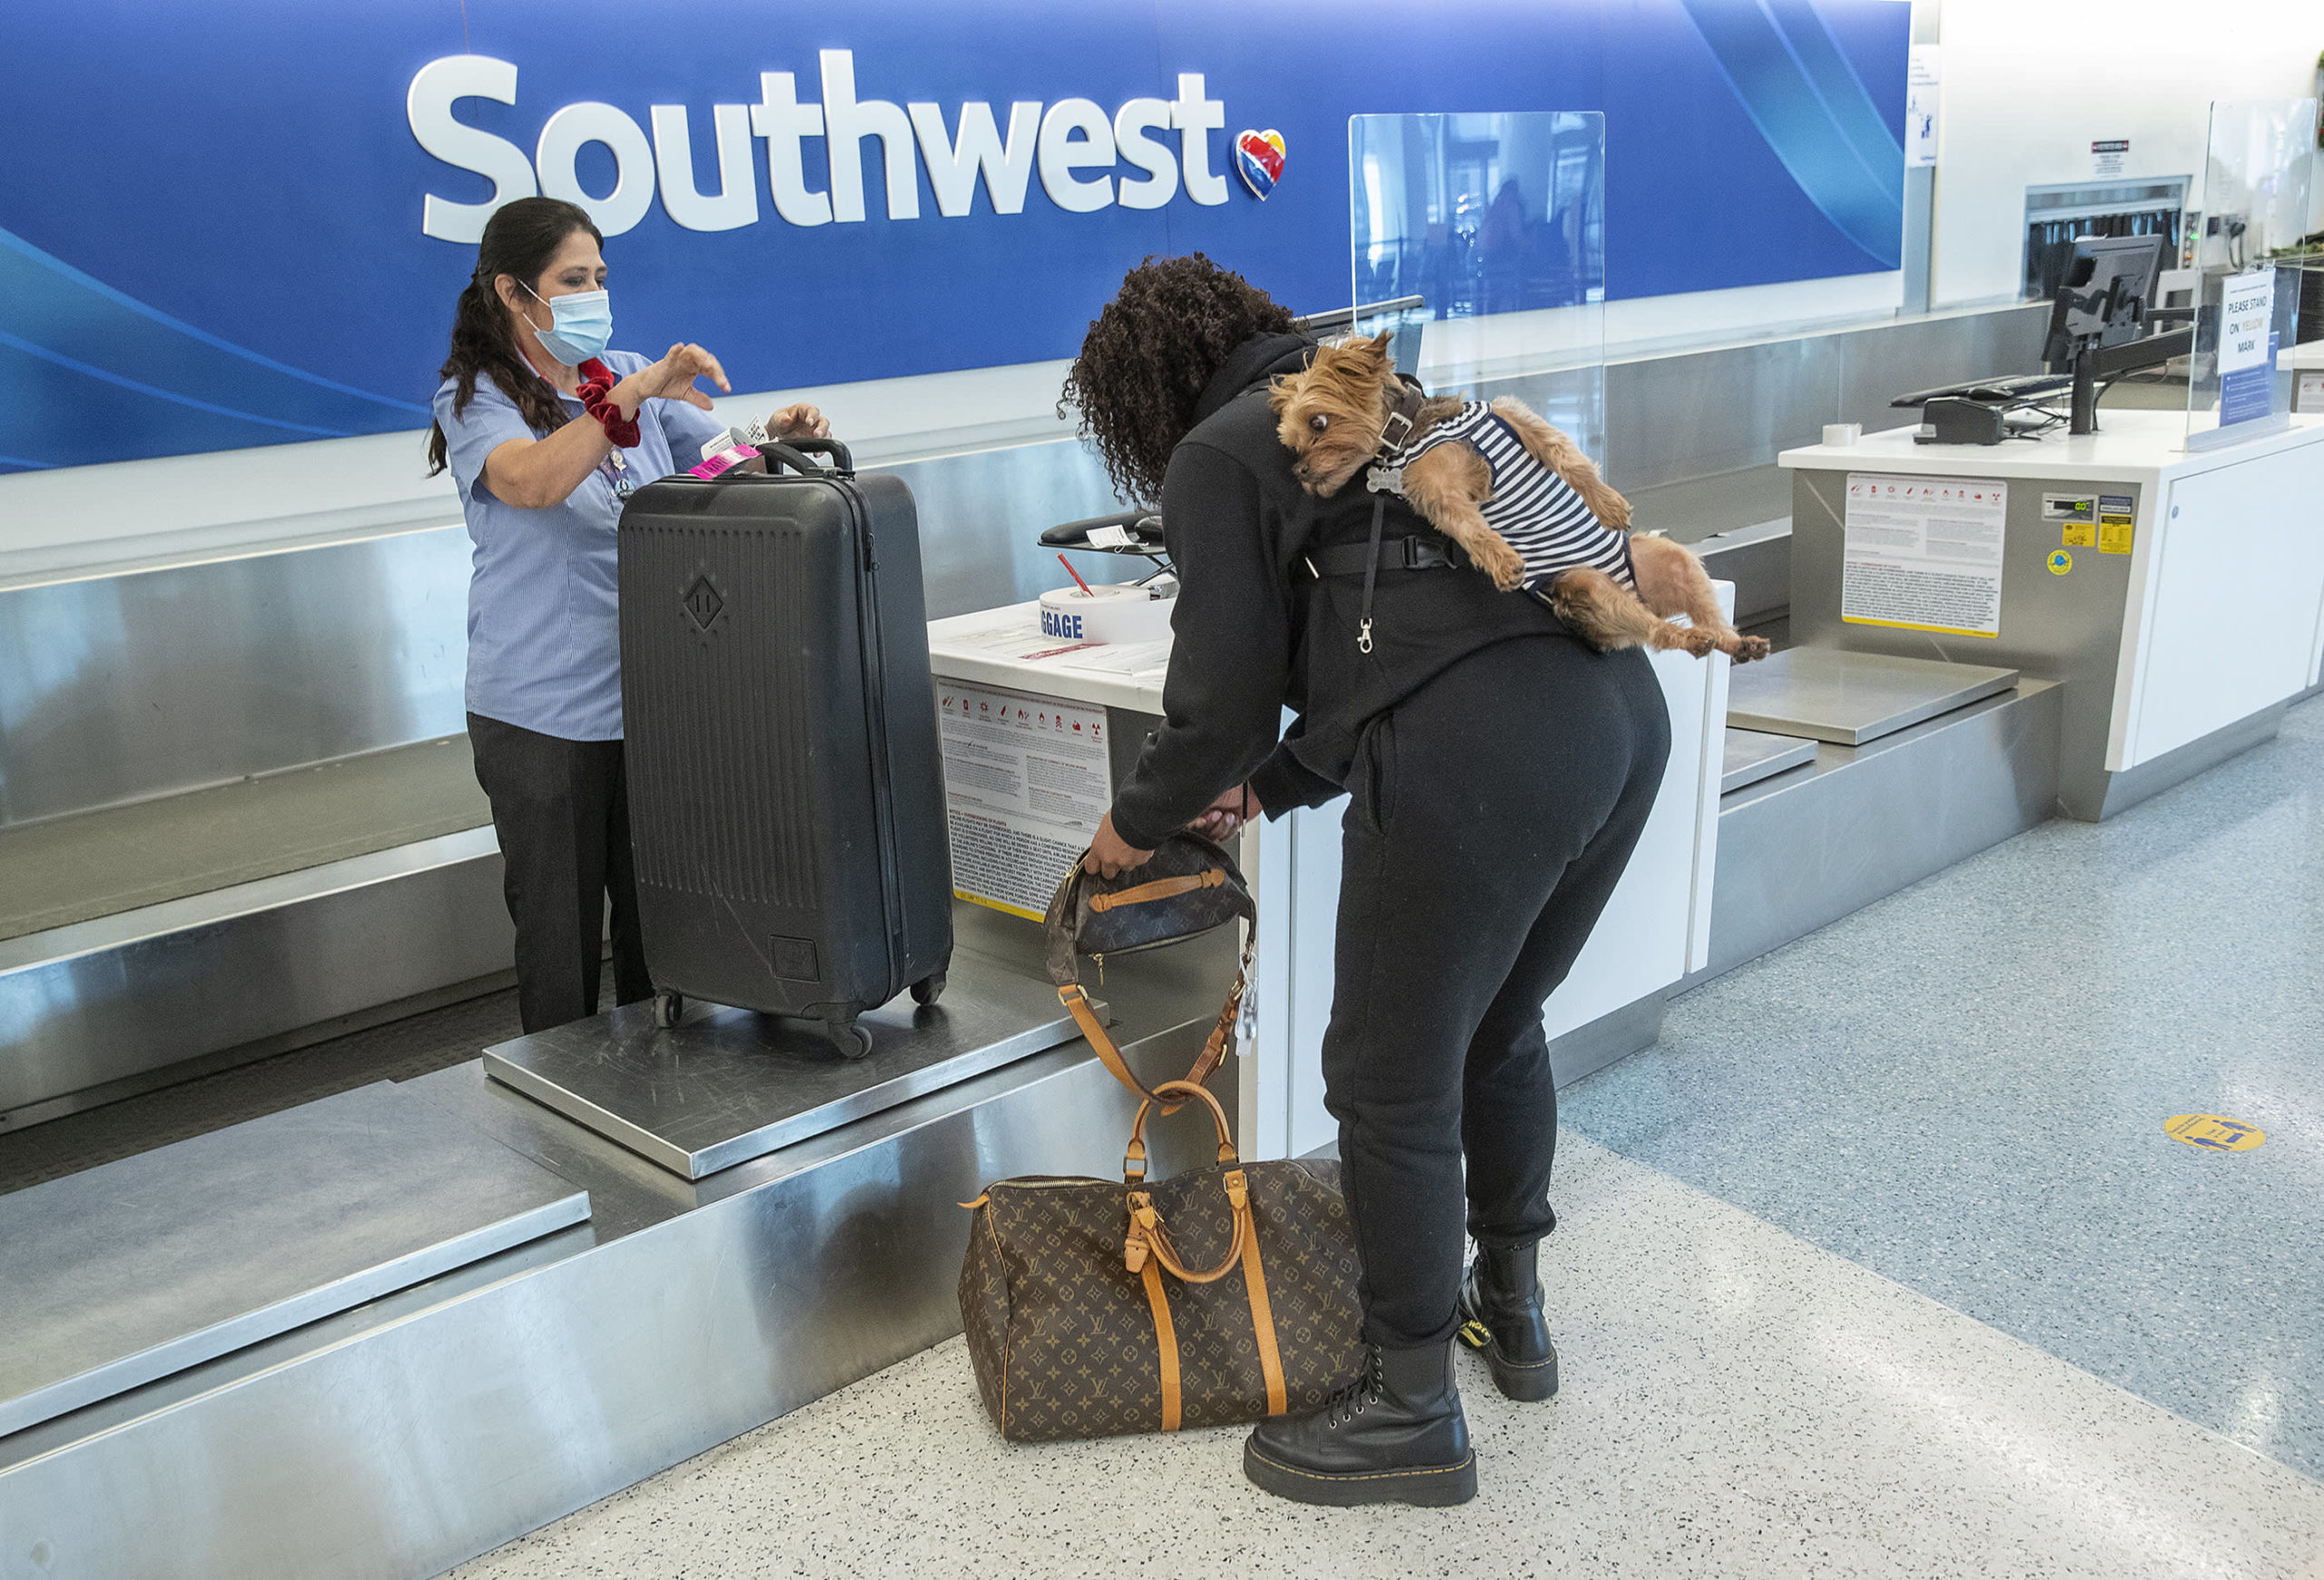 Southwest Airlines' next CEO says carrier will cut flights ...